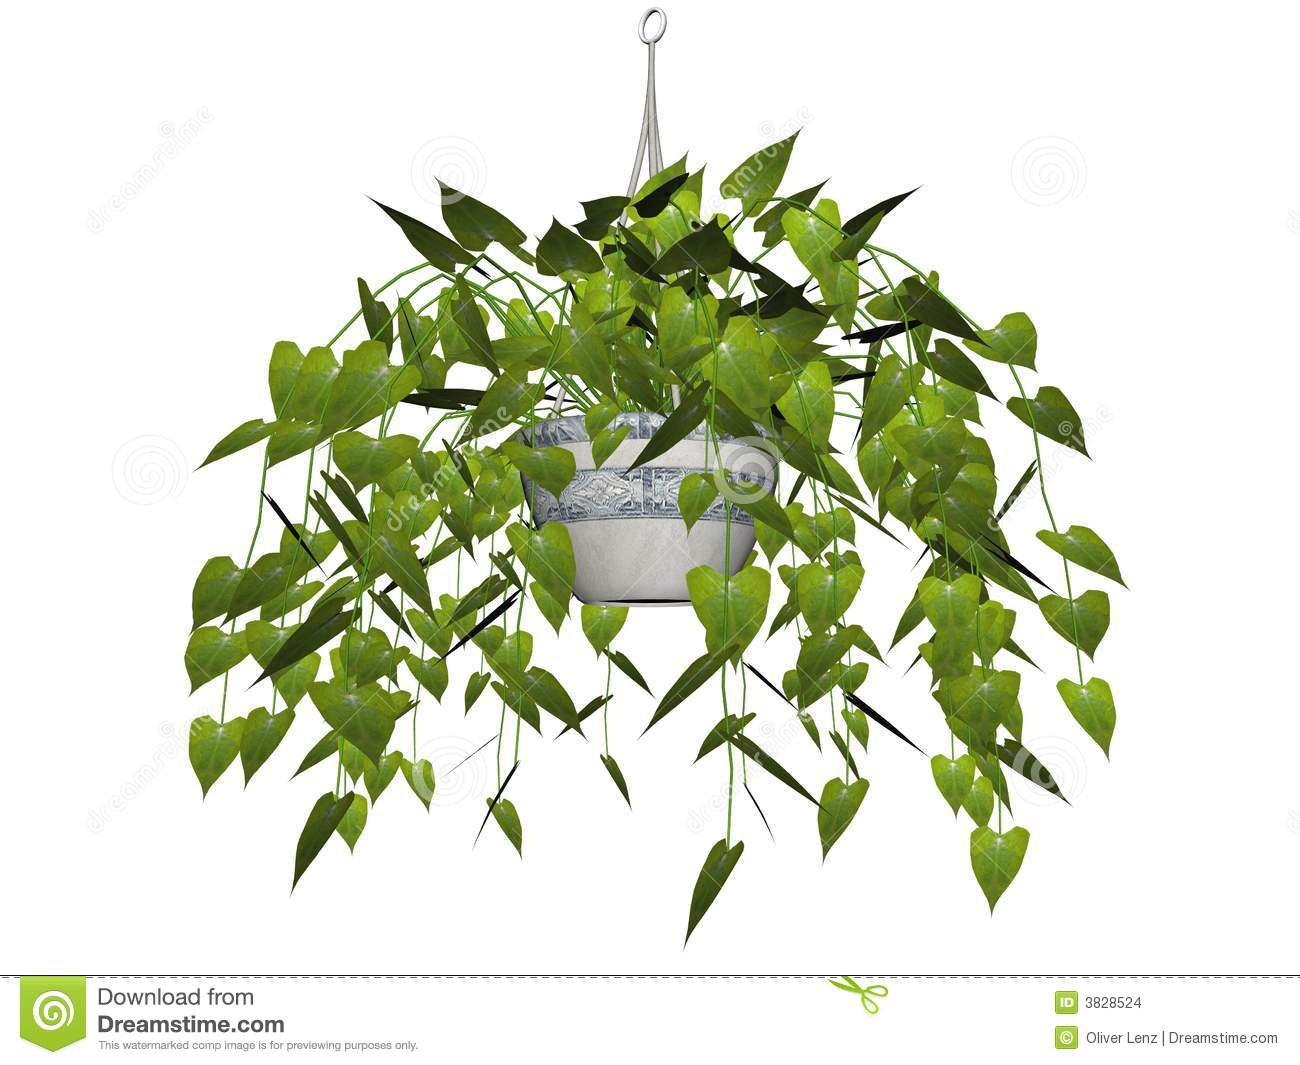 Aerial Plants Clipart.